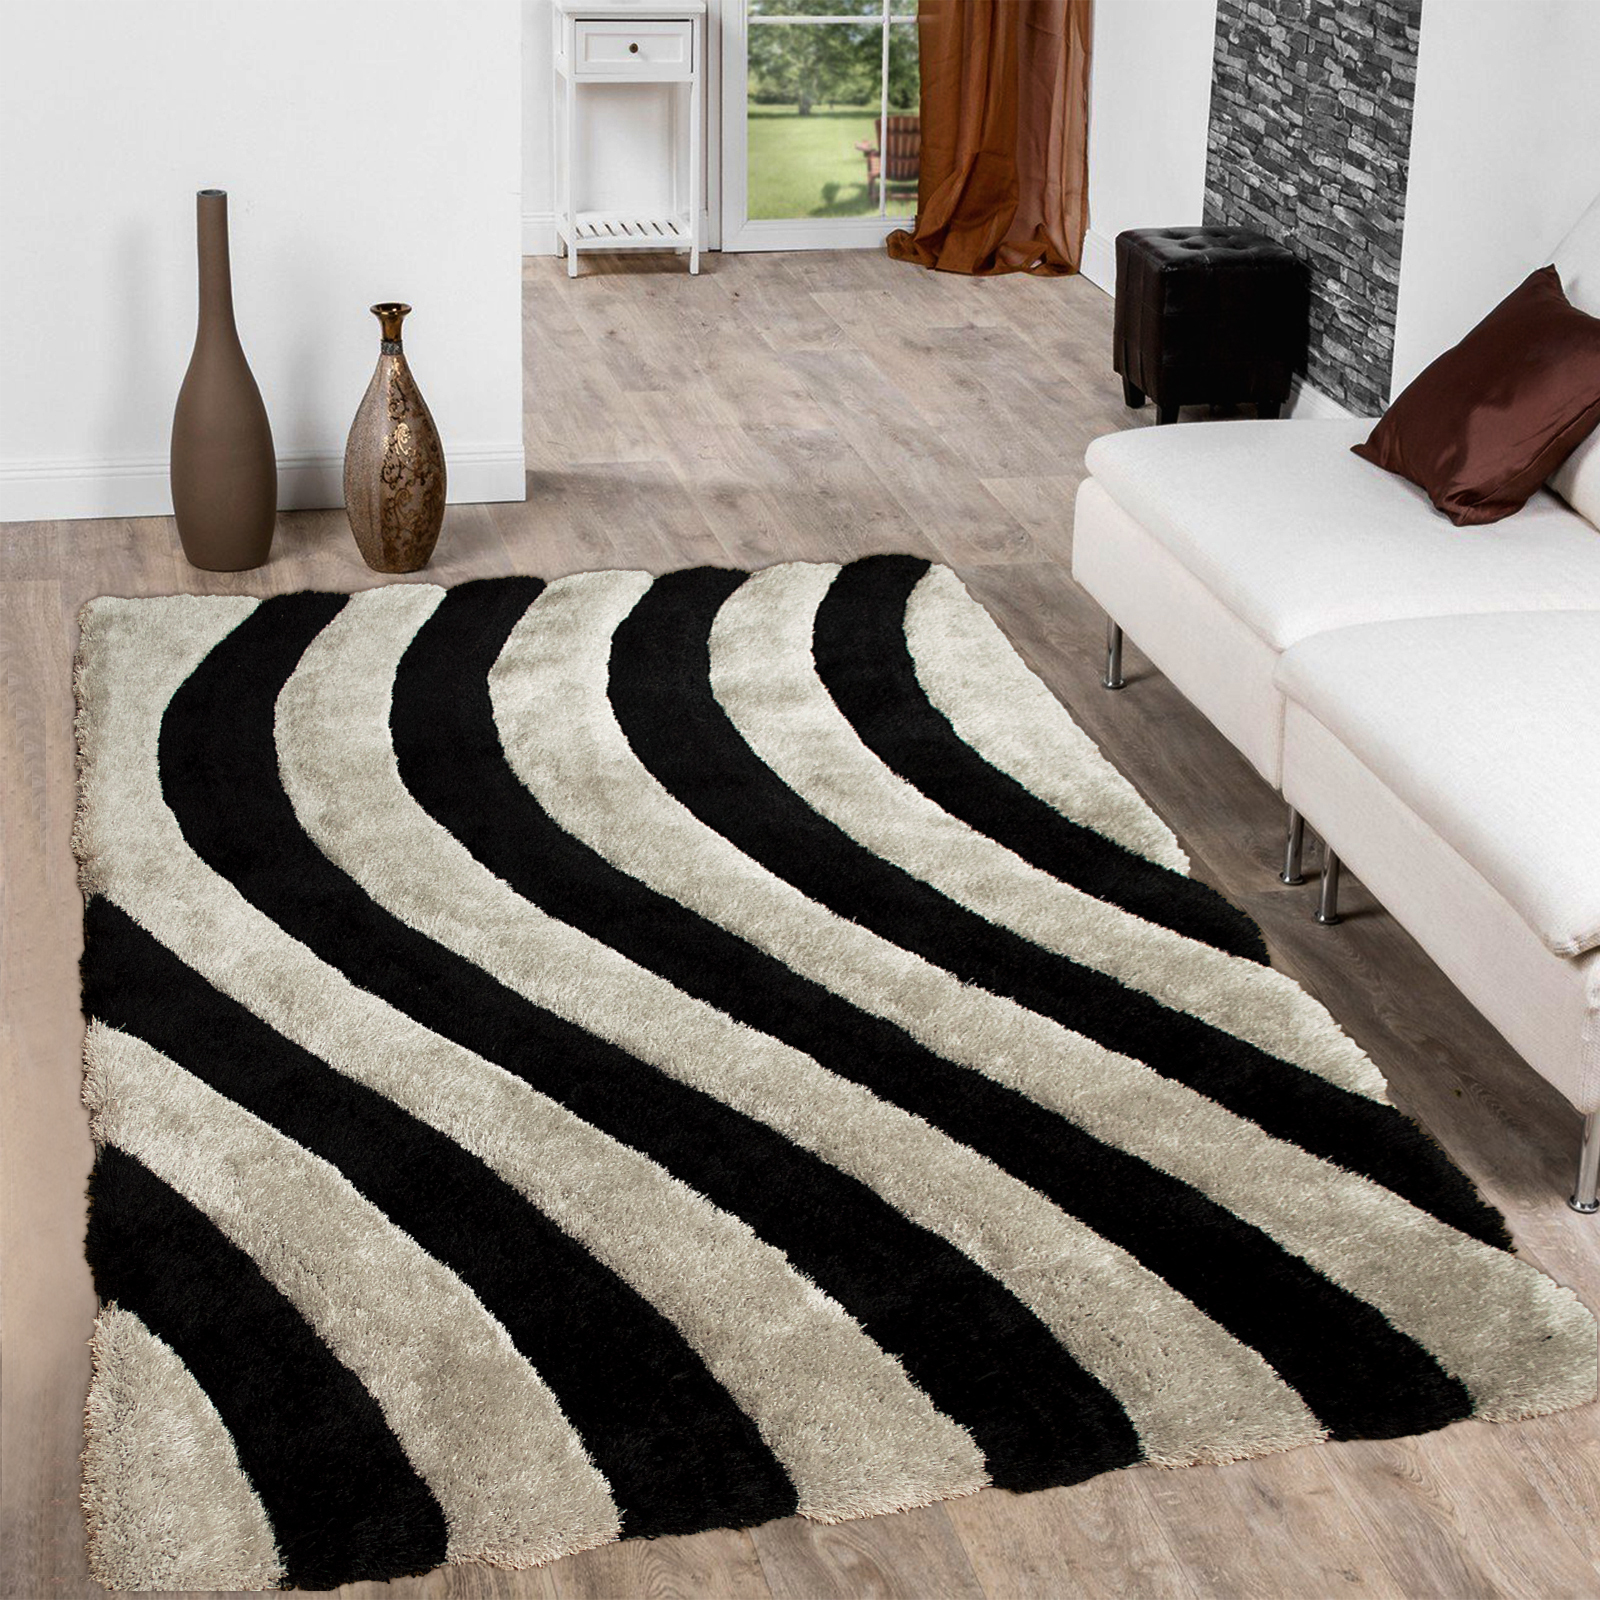 Allstar Grey Shaggy Area Rug with 3D Lines Design. Contemporary Formal Casual Hand Tufted (5' x 7')